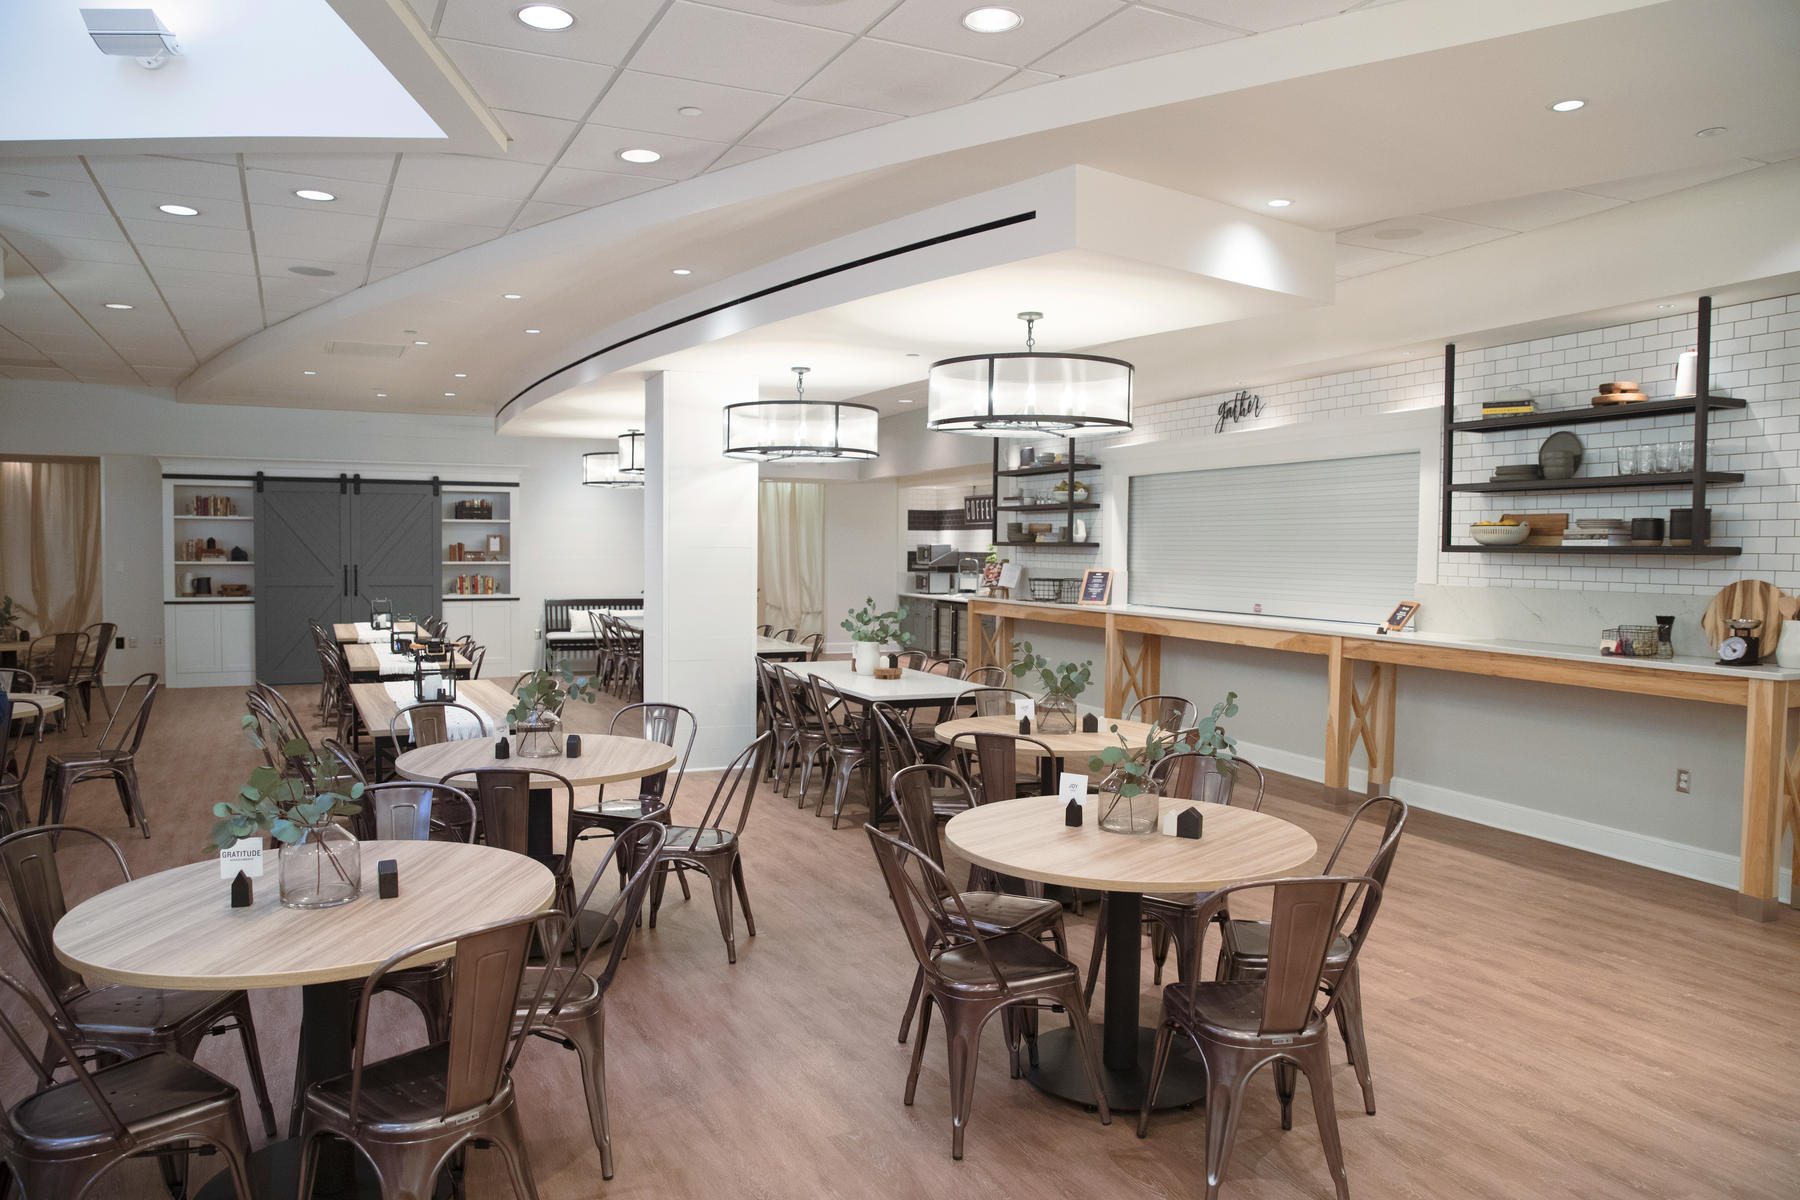 Chip And Joanna Gaines Target House at St. Jude Children's Research Hospital